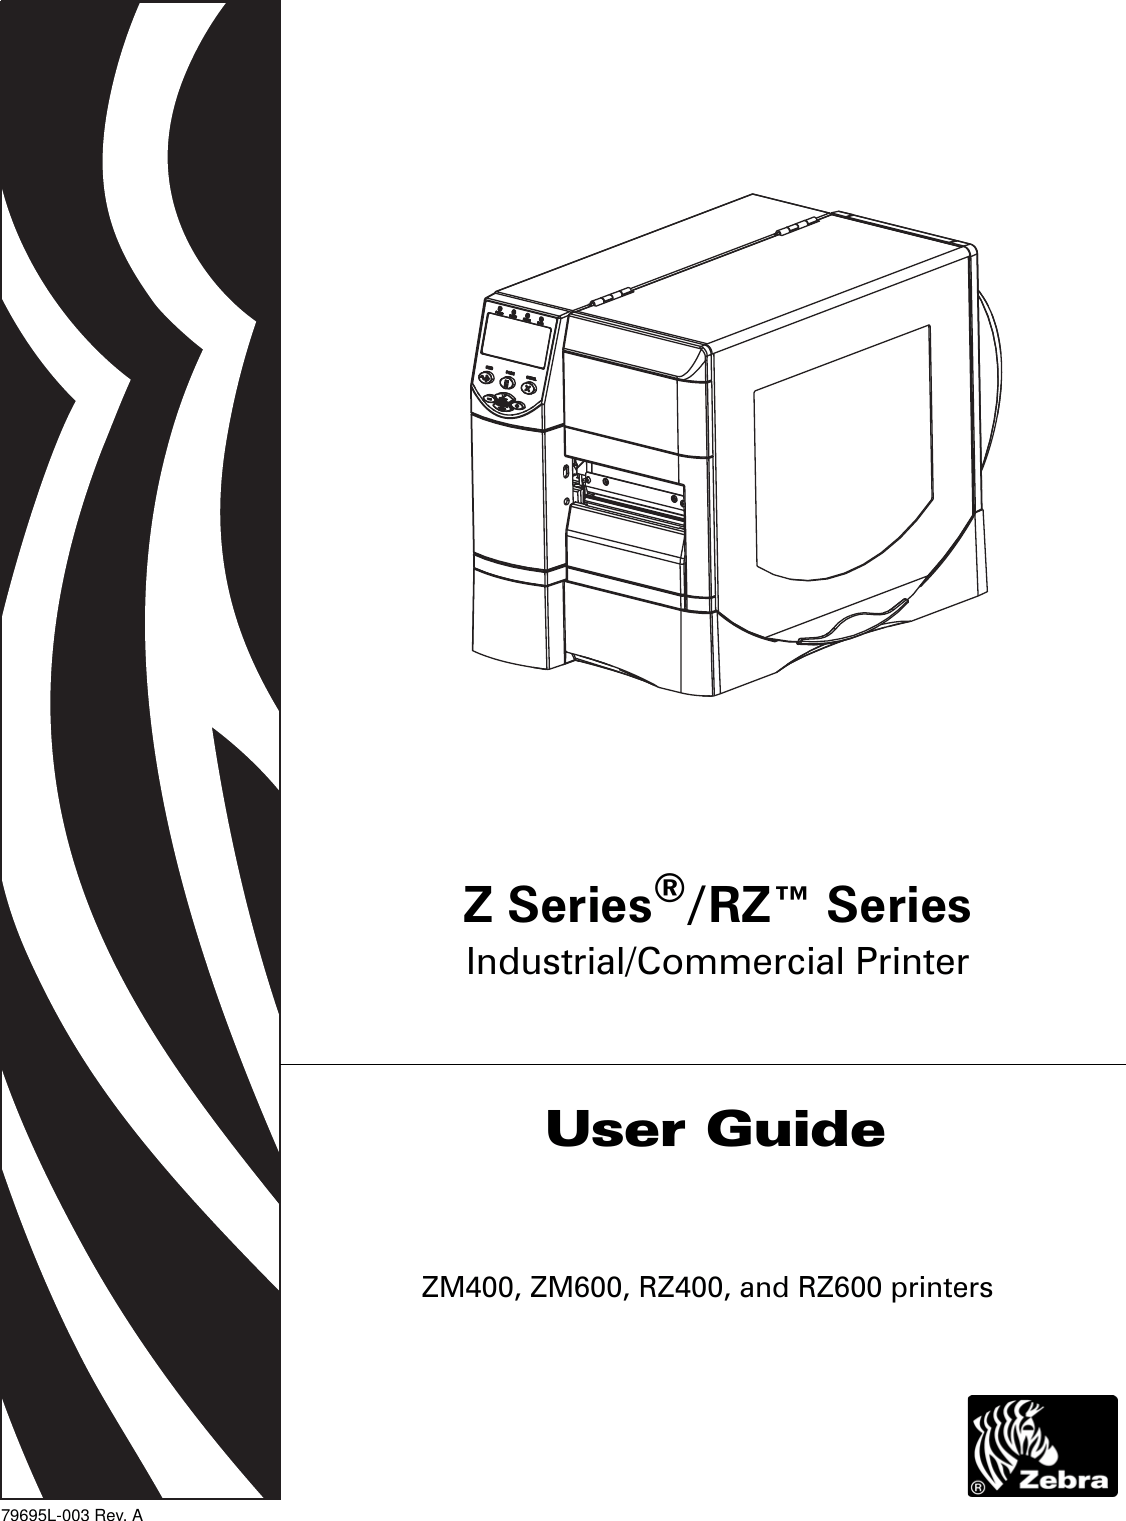 Zebra Rz400 Users Manual Z Series / RZ User Guide